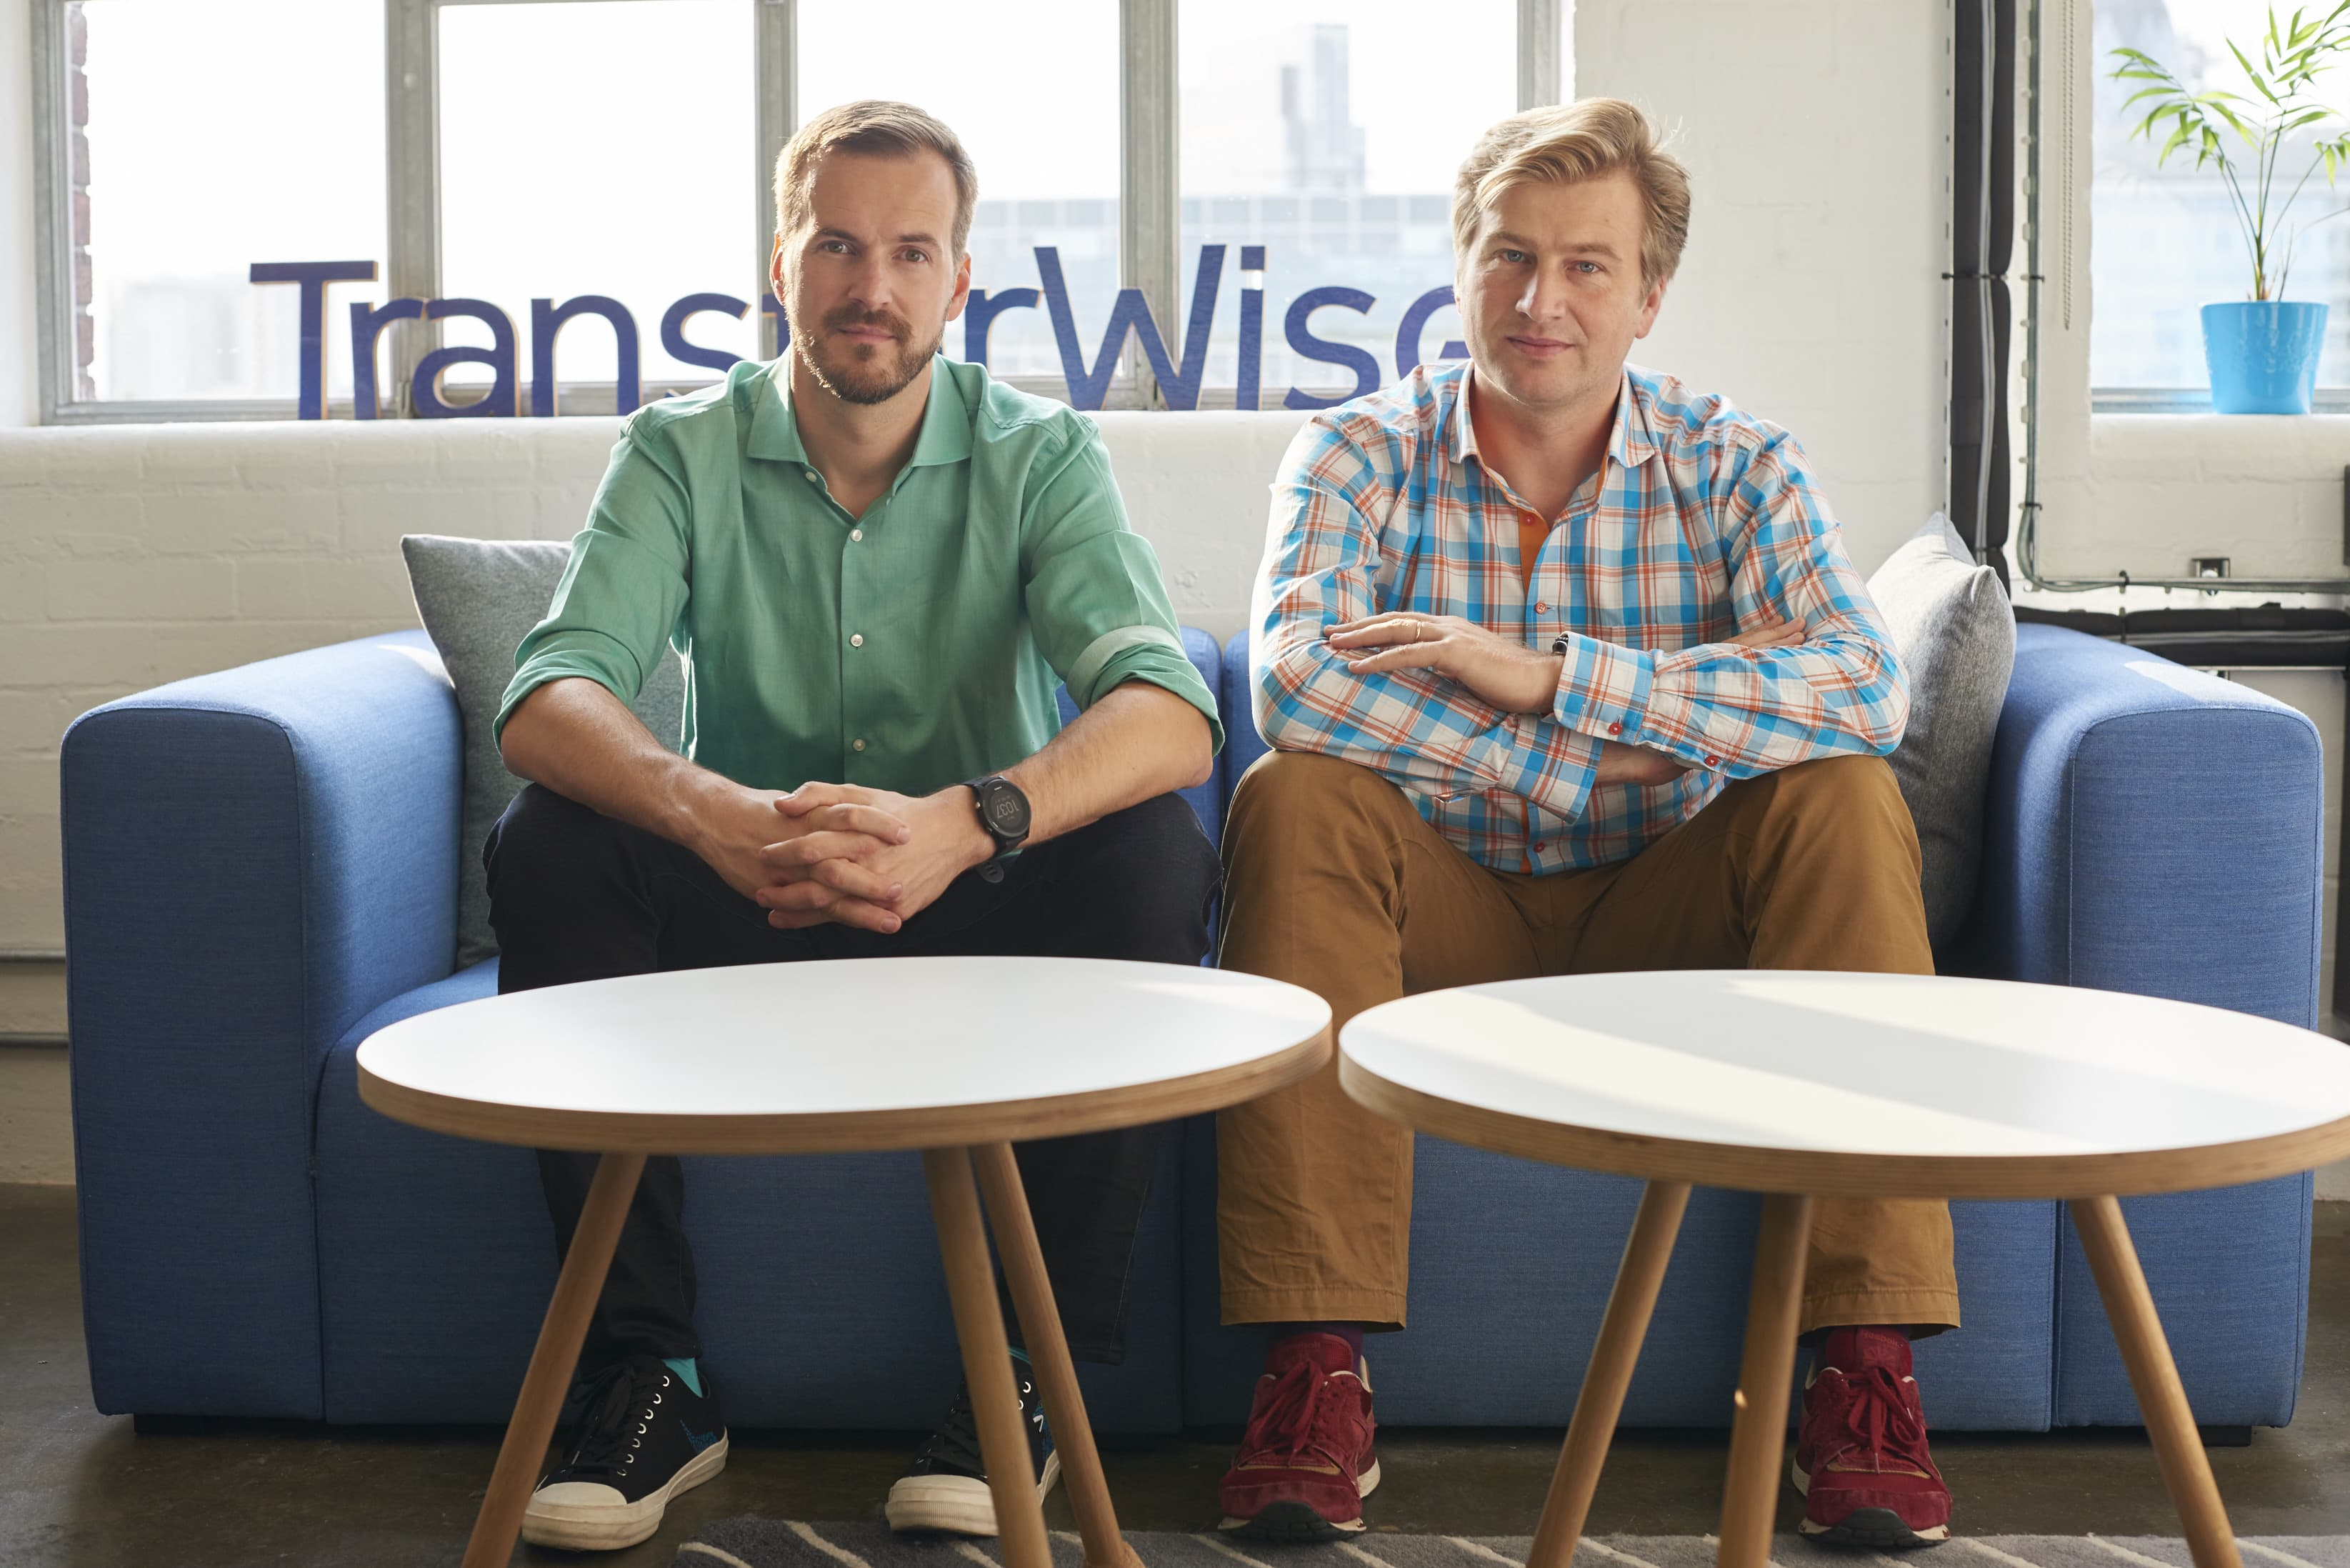 TransferWise co-founders Taavet Hinrikus and Kristo Kaarmann.